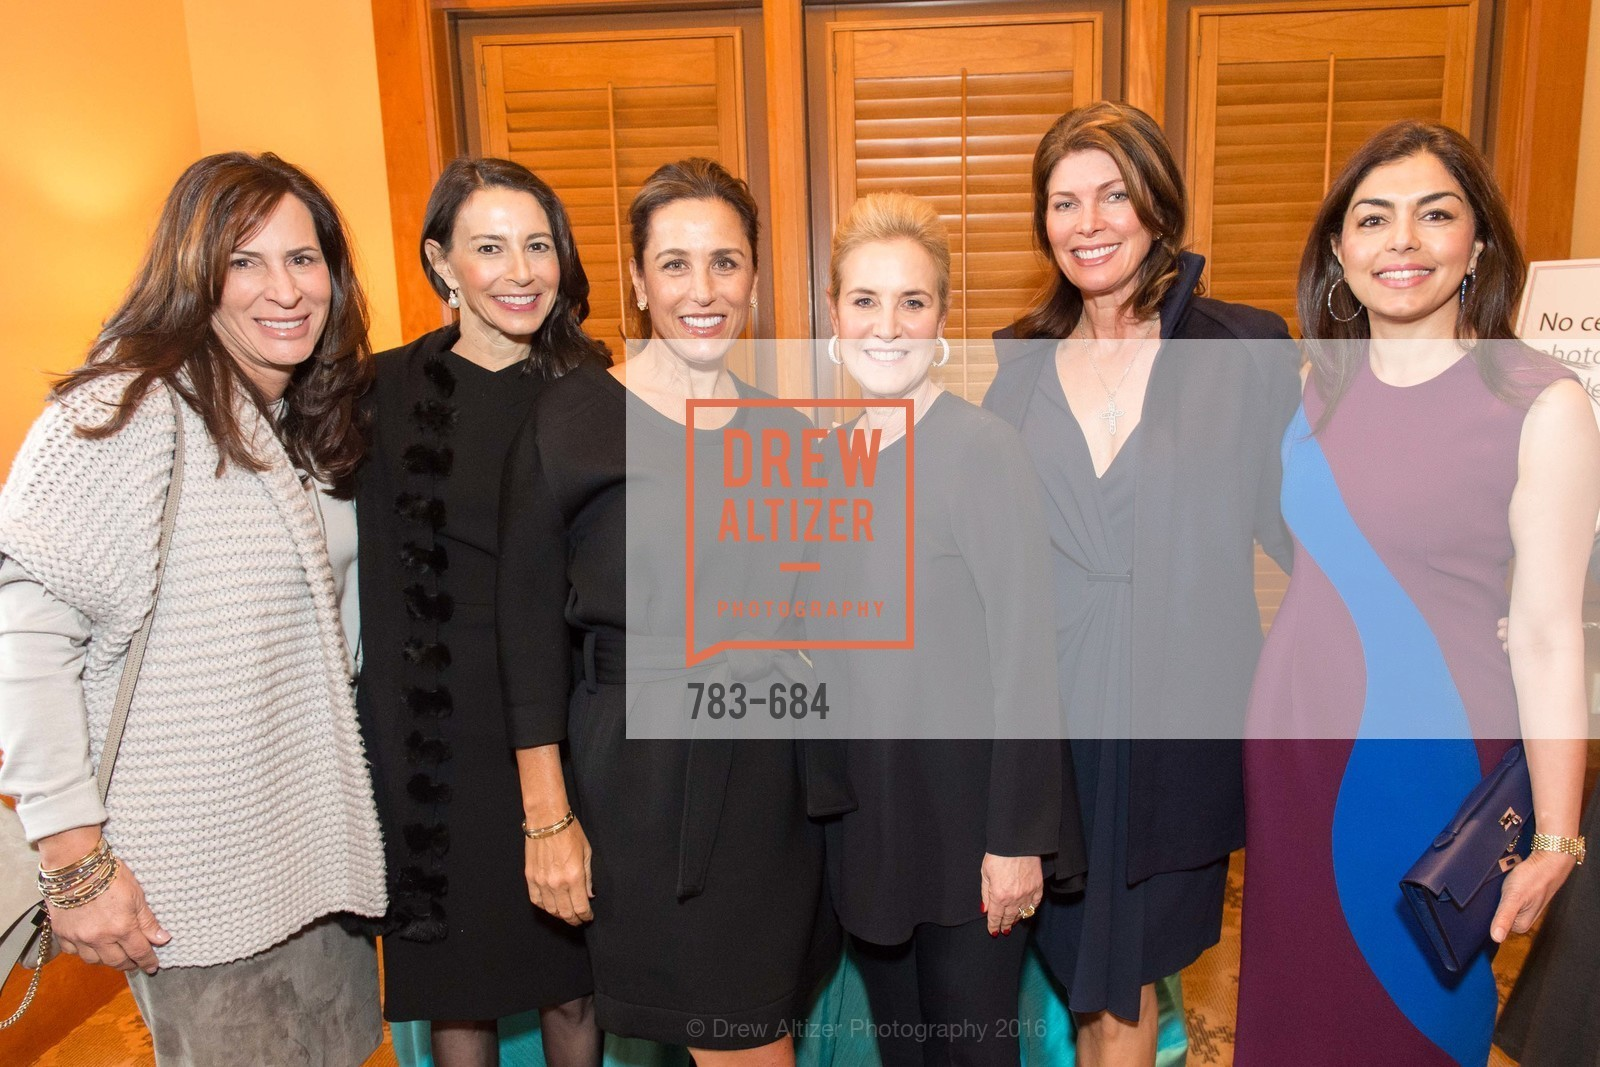 Julie Robson, Linda Ziegler, Lainie Garrick, Lisa Goldman, Karen Lott, Sara Abbasi, Under One Umbrella, Sharon Heights Golf and Country Club, January 13th, 2016,Drew Altizer, Drew Altizer Photography, full-service agency, private events, San Francisco photographer, photographer california